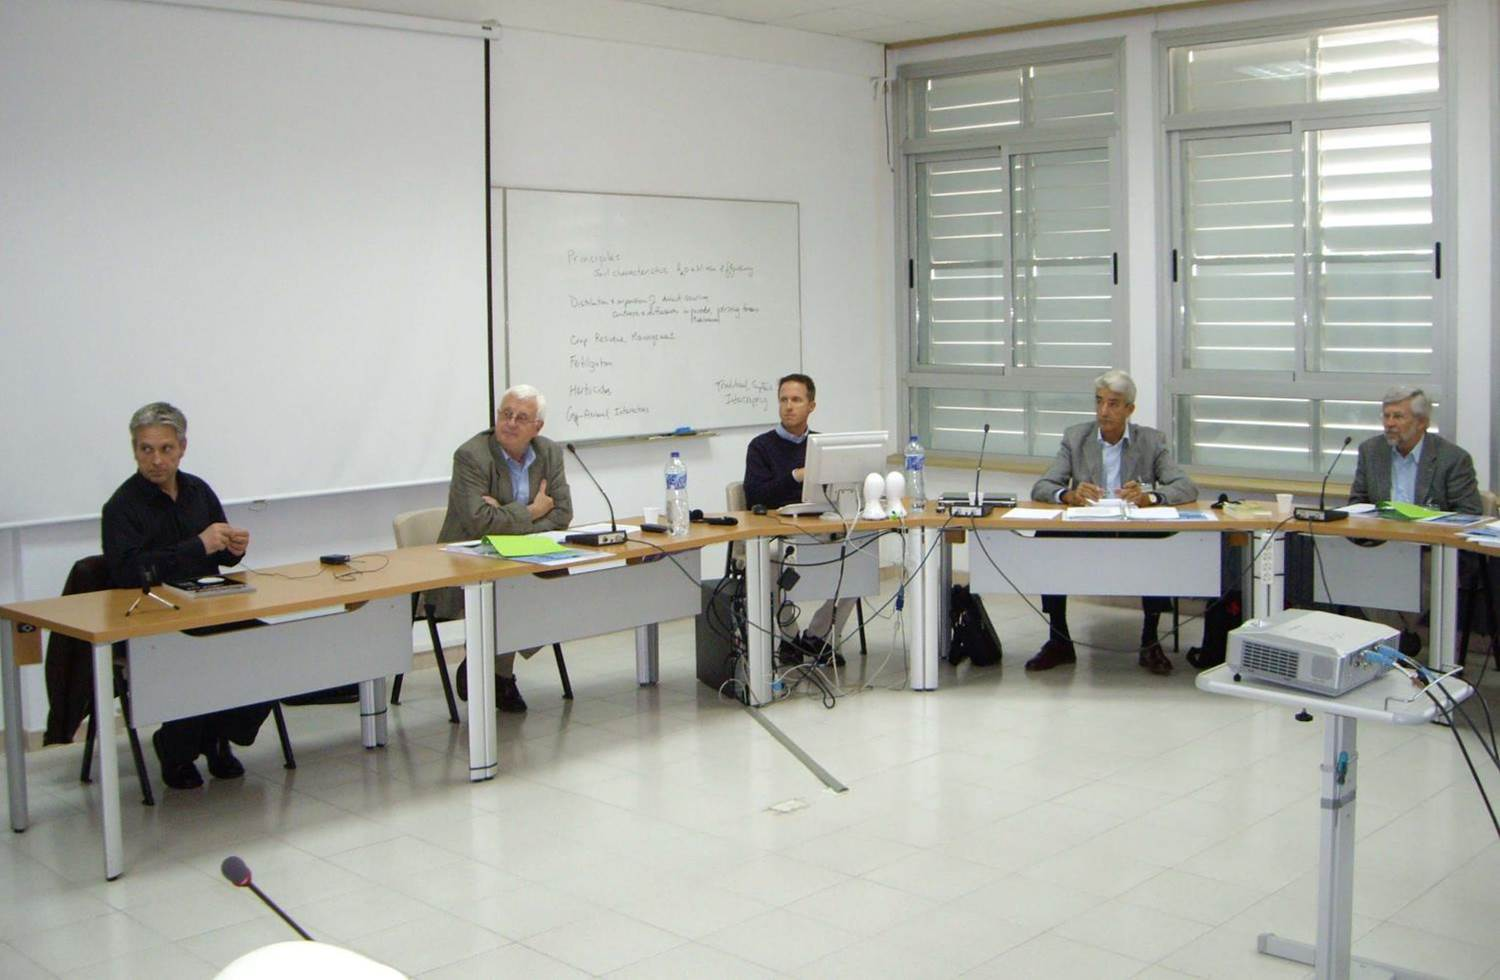 Instructors of conservation agriculture short-course in Zaragoza, Spain